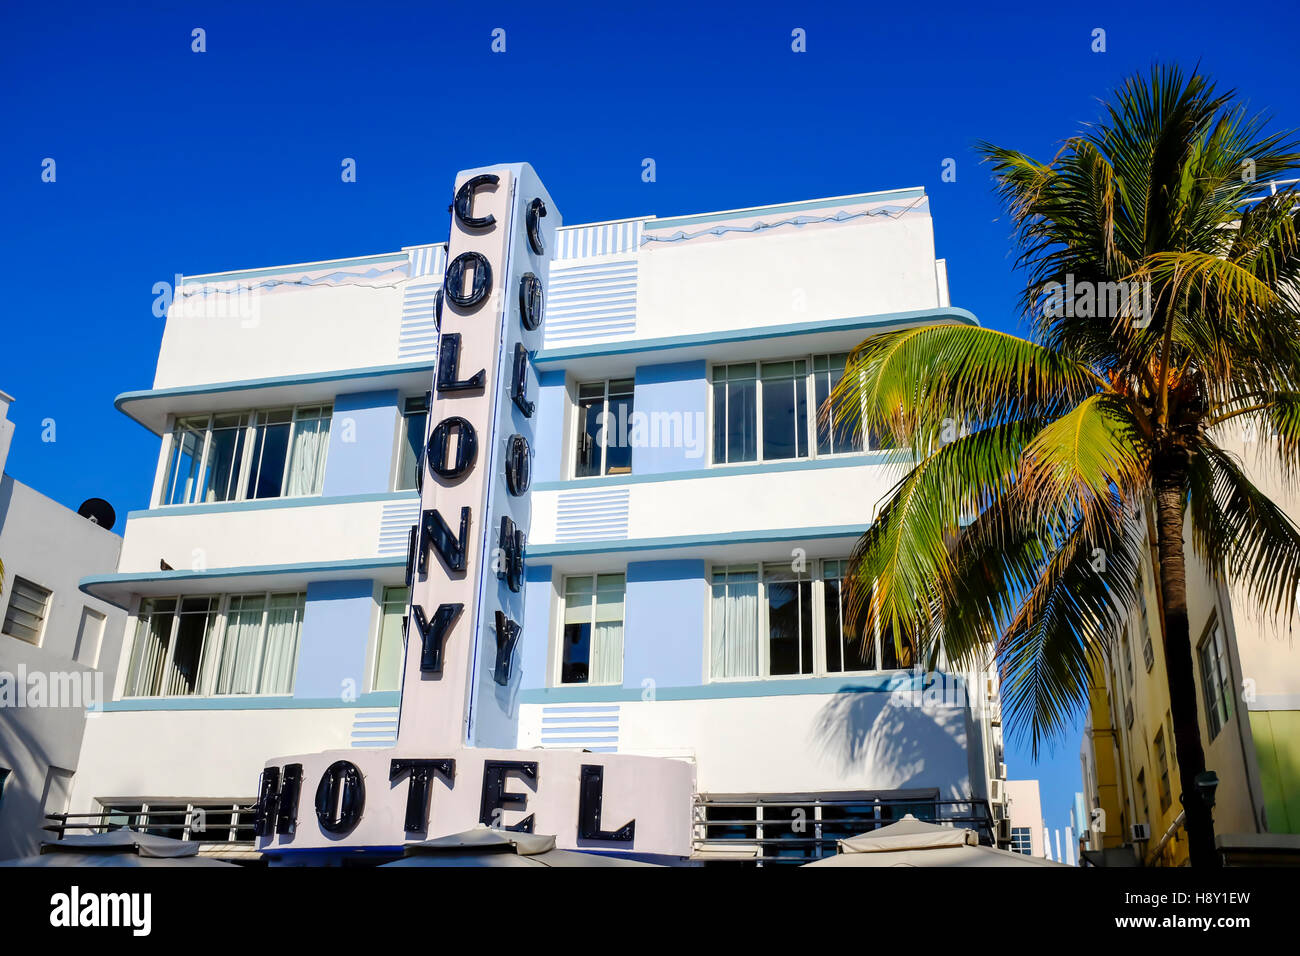 Colony Hotel, South Beach, Ocean Drive, Miami, Florida, United States of America, USA - Stock Image